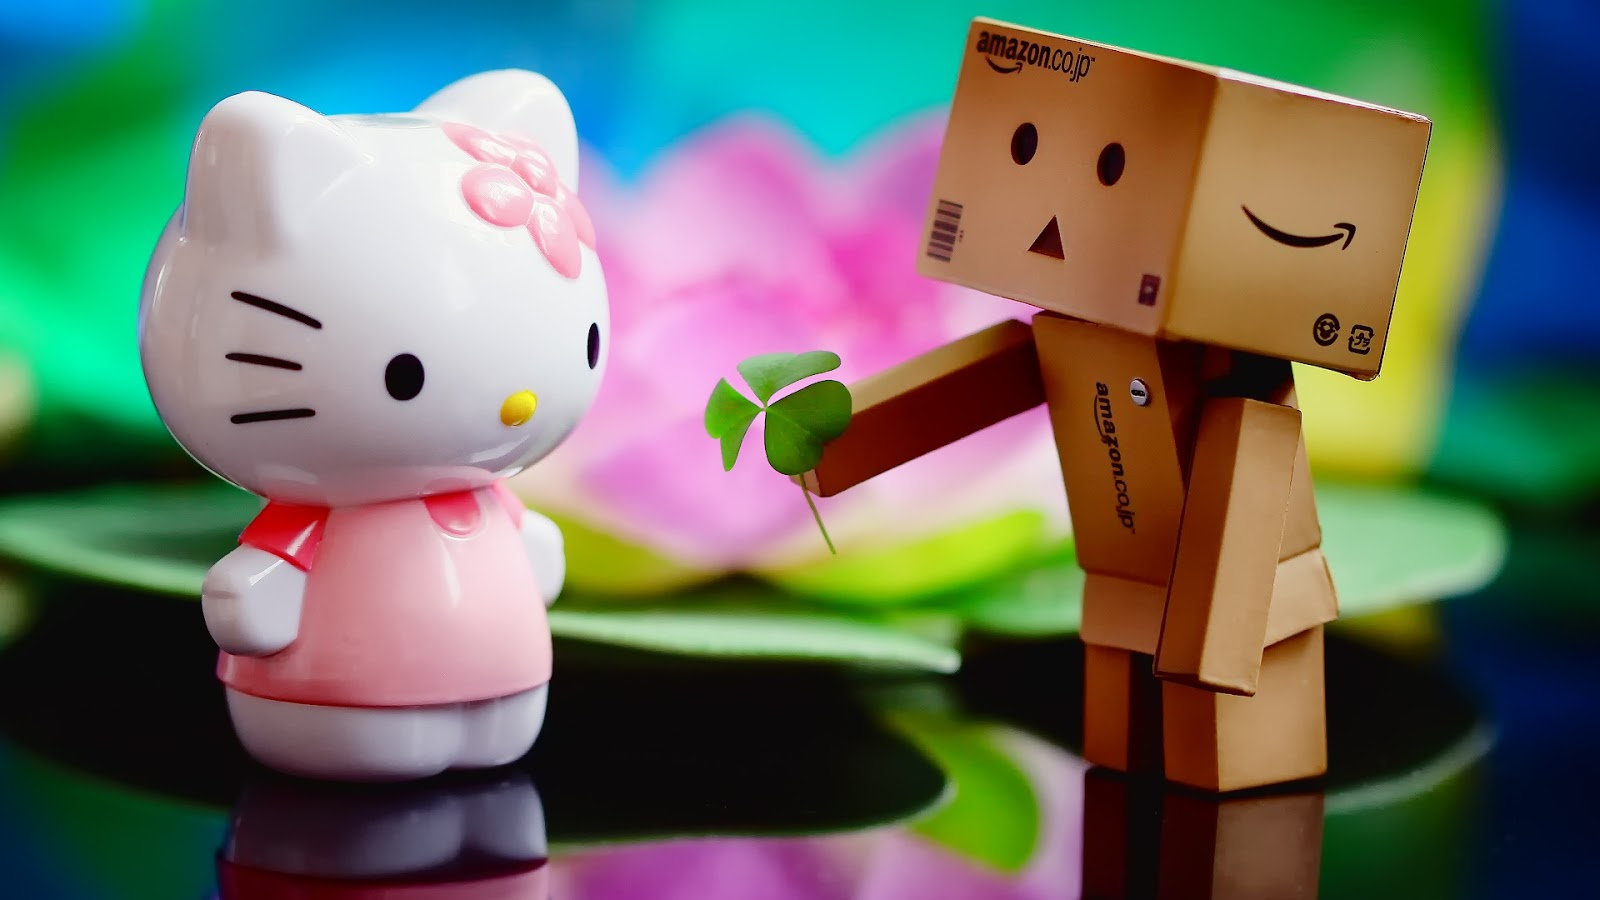 Love you Kitty 1920x1080 Wallpaper